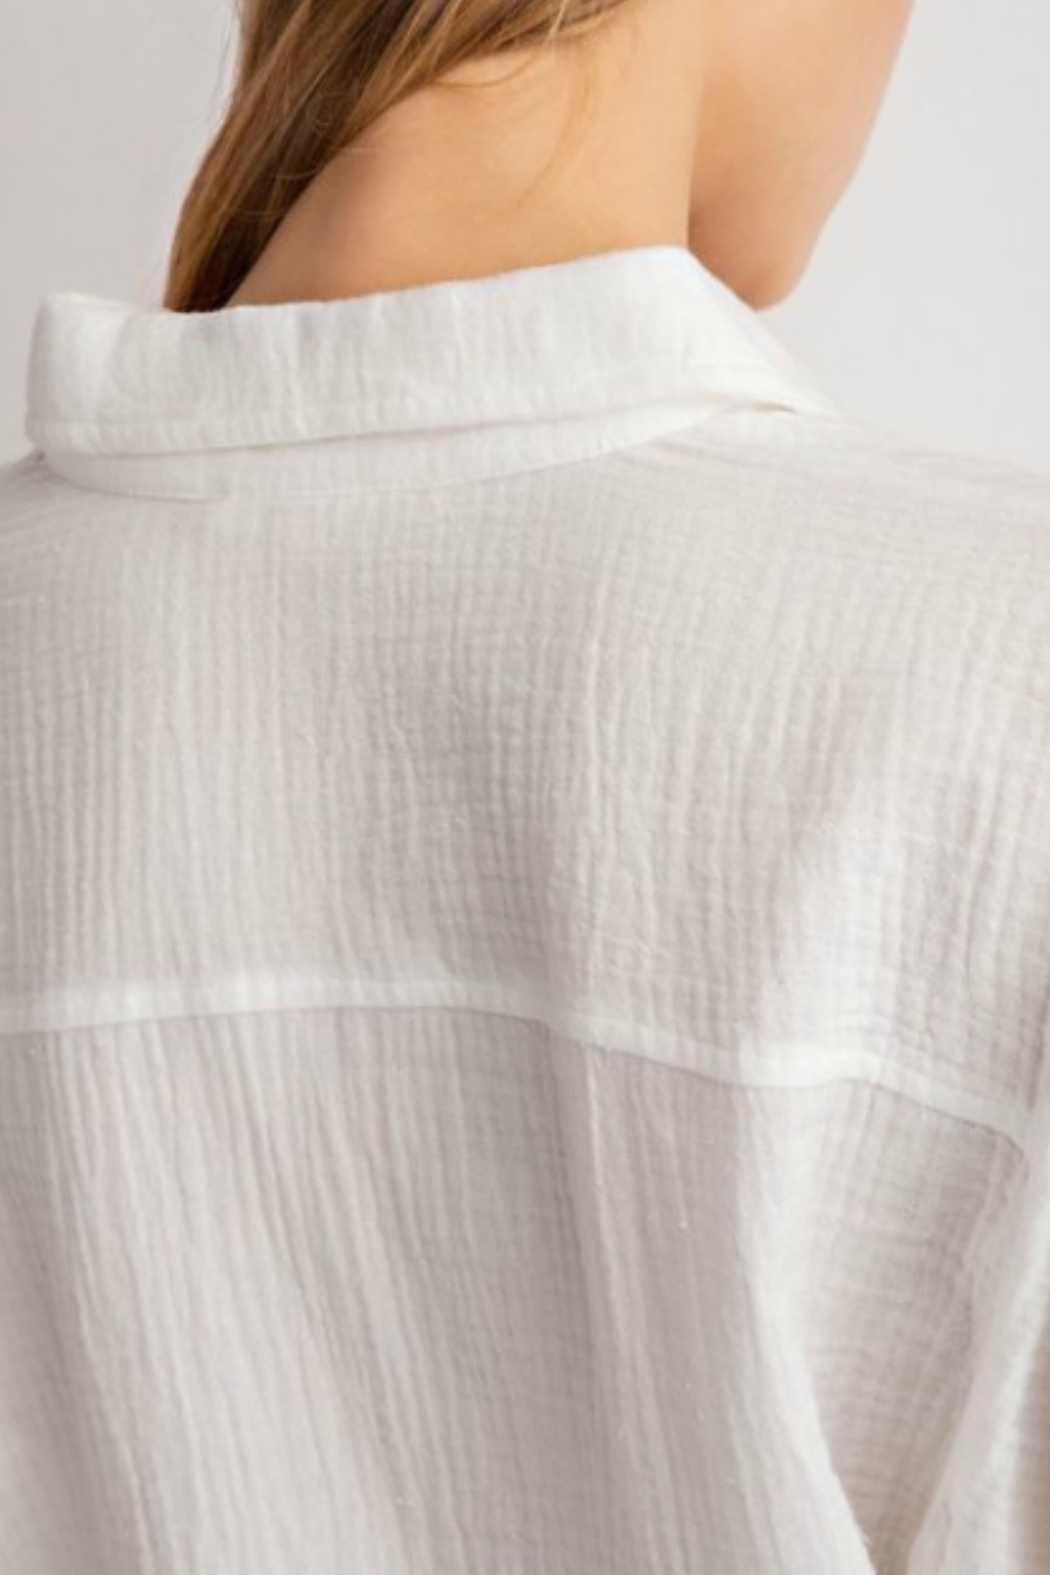 lelis Casual long sleeve top with front tie detail - Side Cropped Image